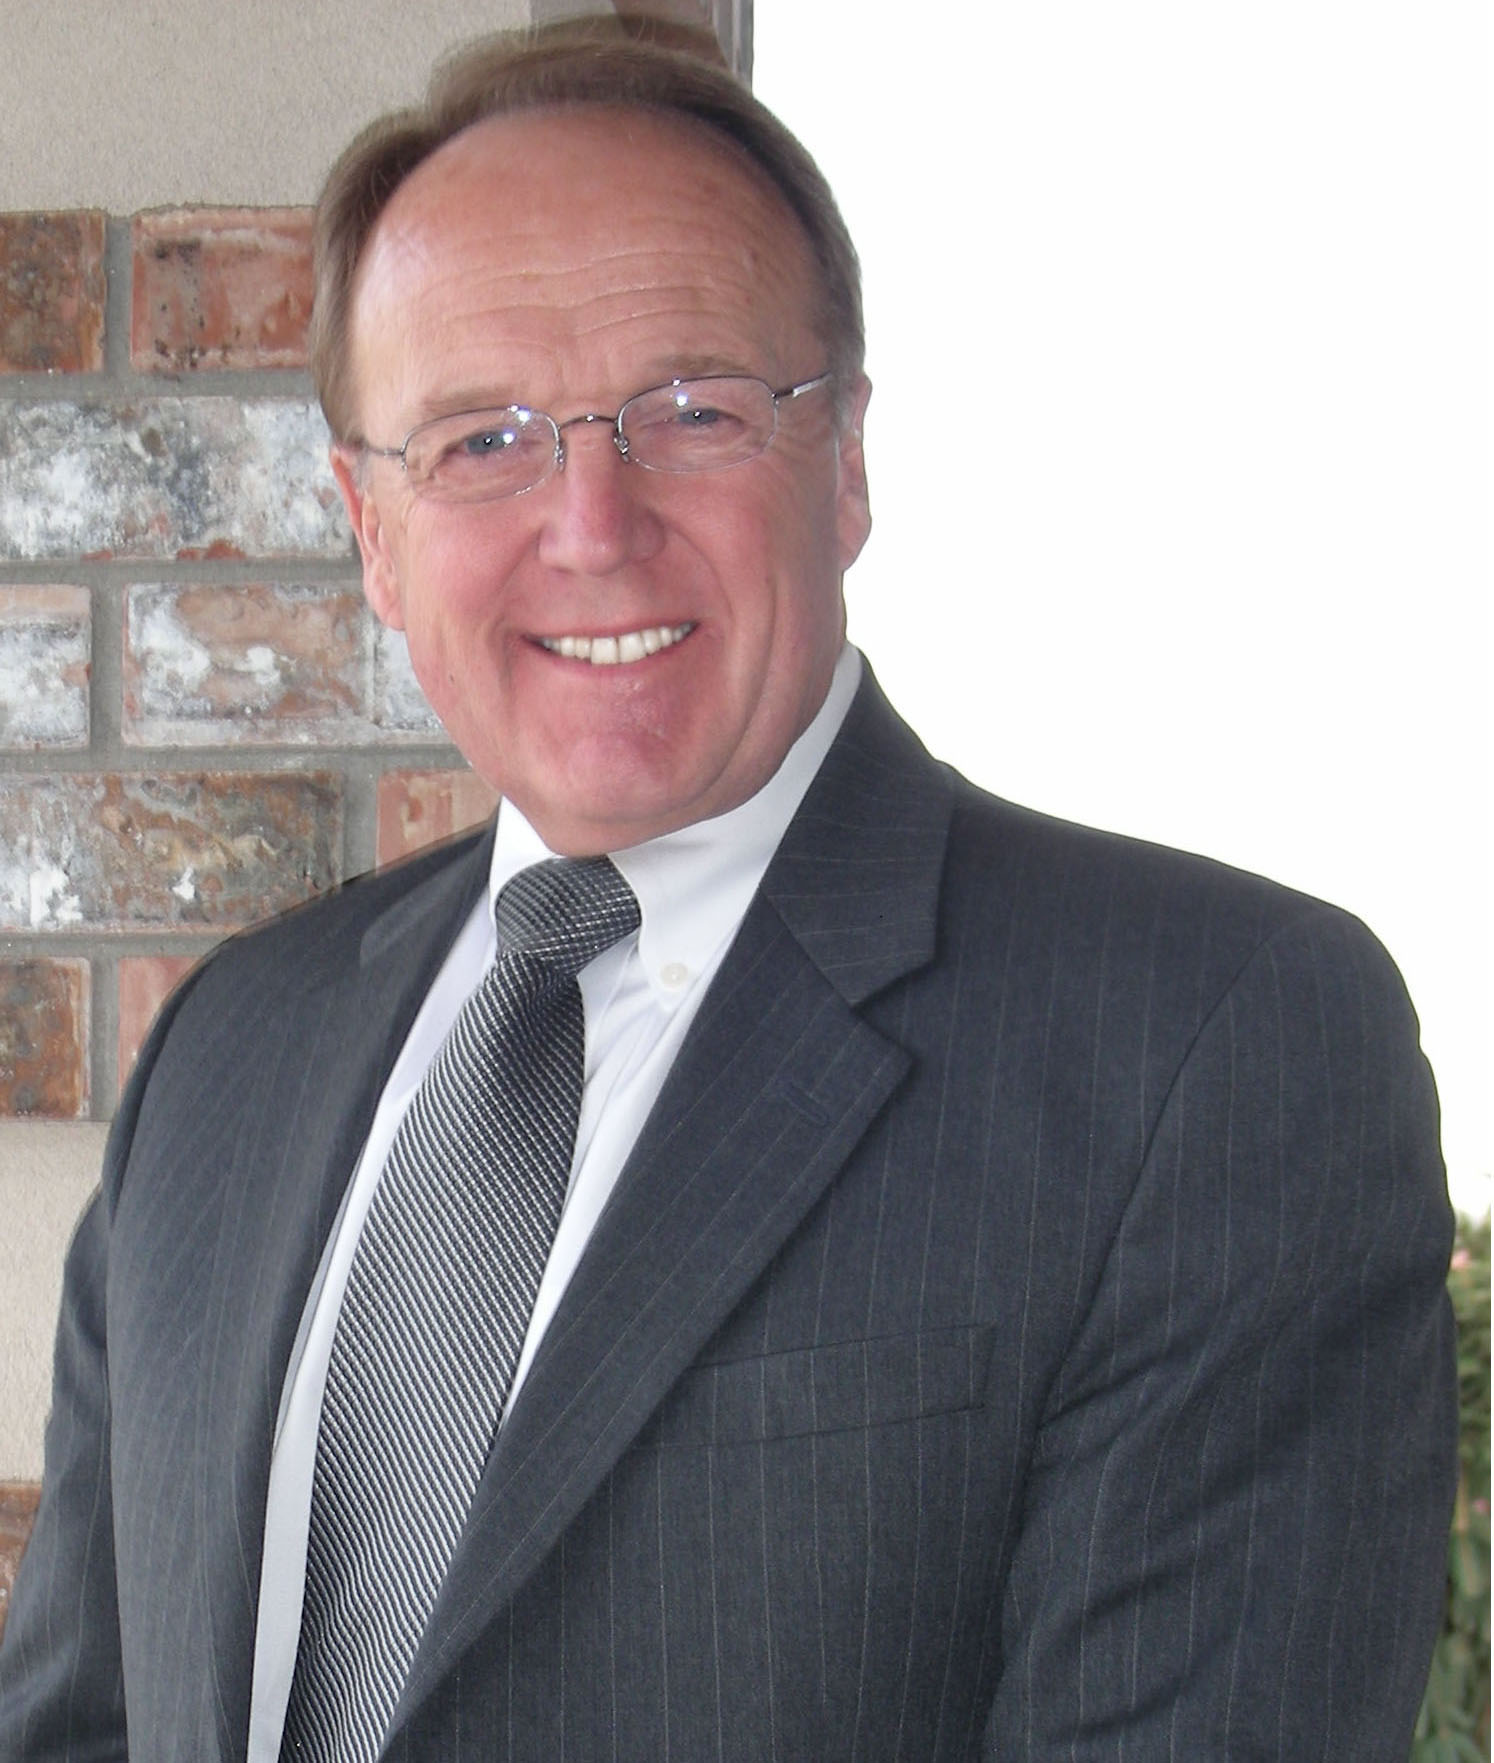 Robert L. Powers, CEO